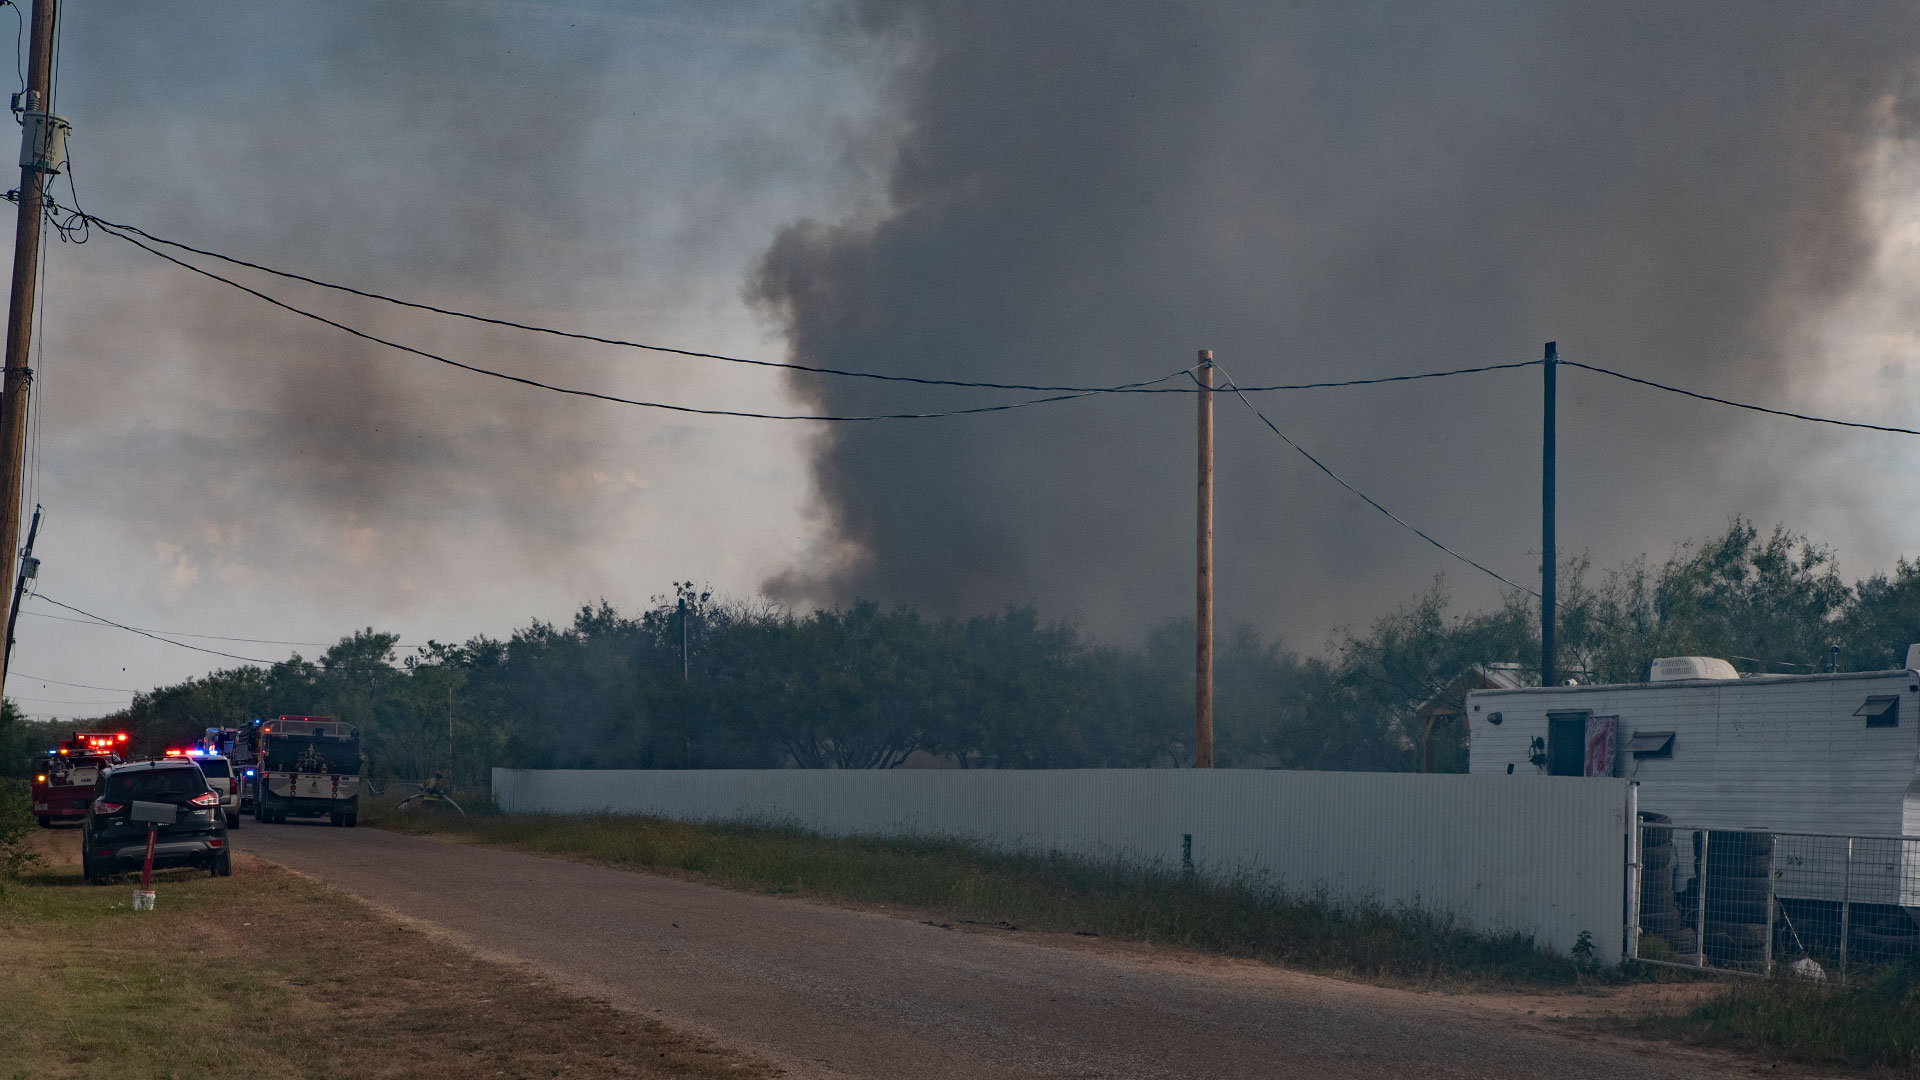 Units from the Grape Creek and Quail Valley Volunteer Fire Departments respond to a structure fire on the 1000 block of Cottontail Lane in Grape Creek on September 21, 2021